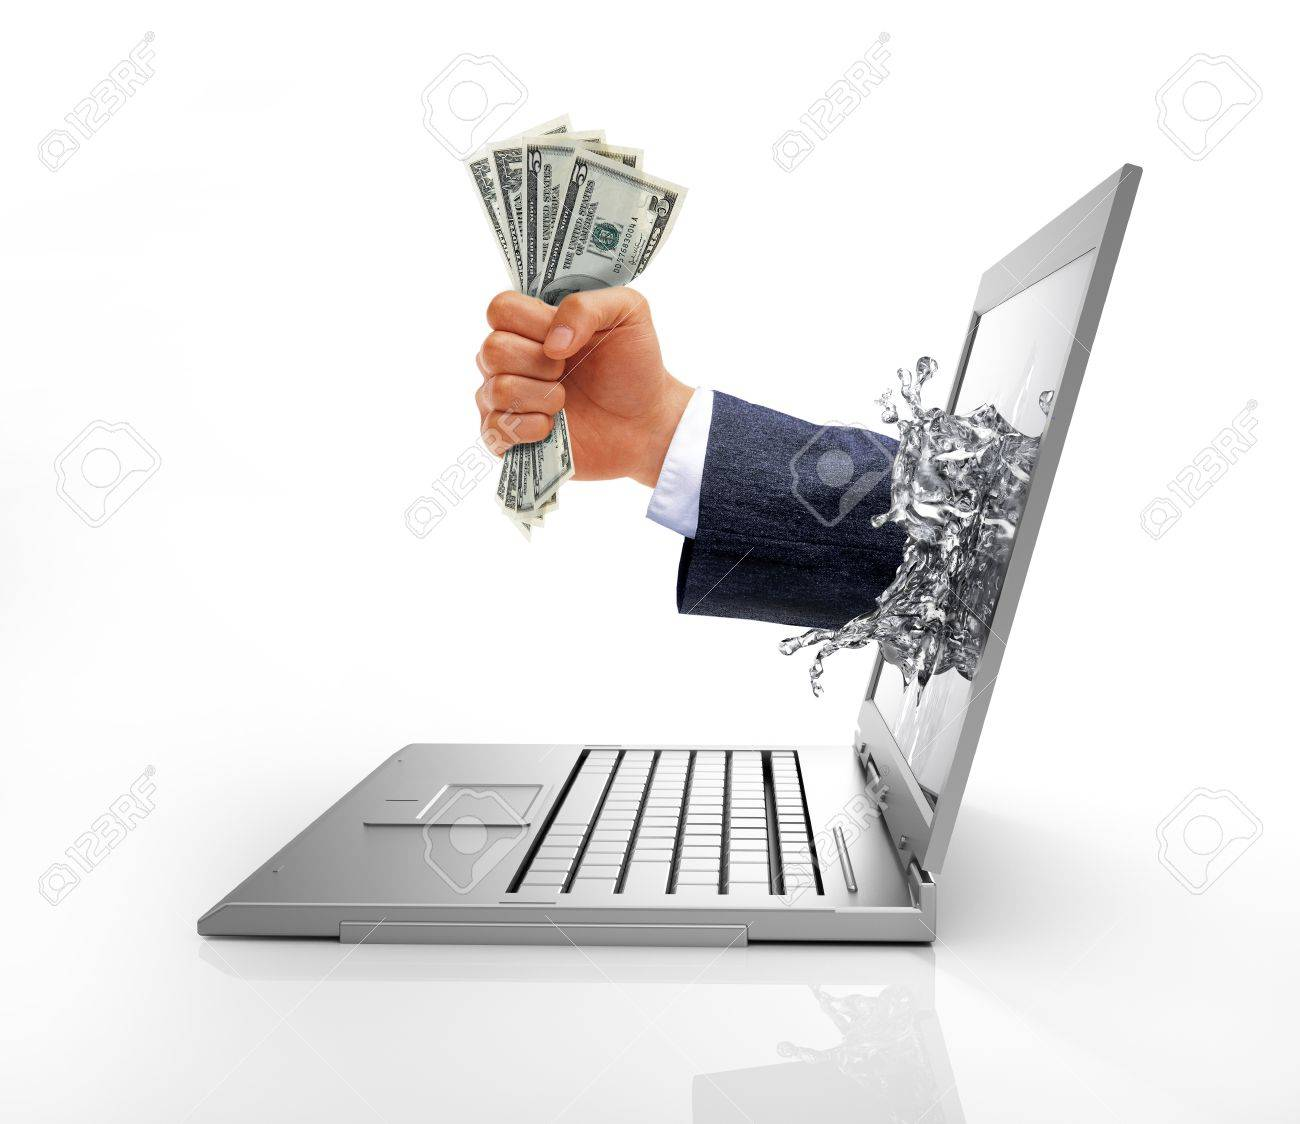 Human hand with money, coming out from a liquid splash on the computer screen. Isolated on white background, with clipping path included. Stock Photo - 19893790